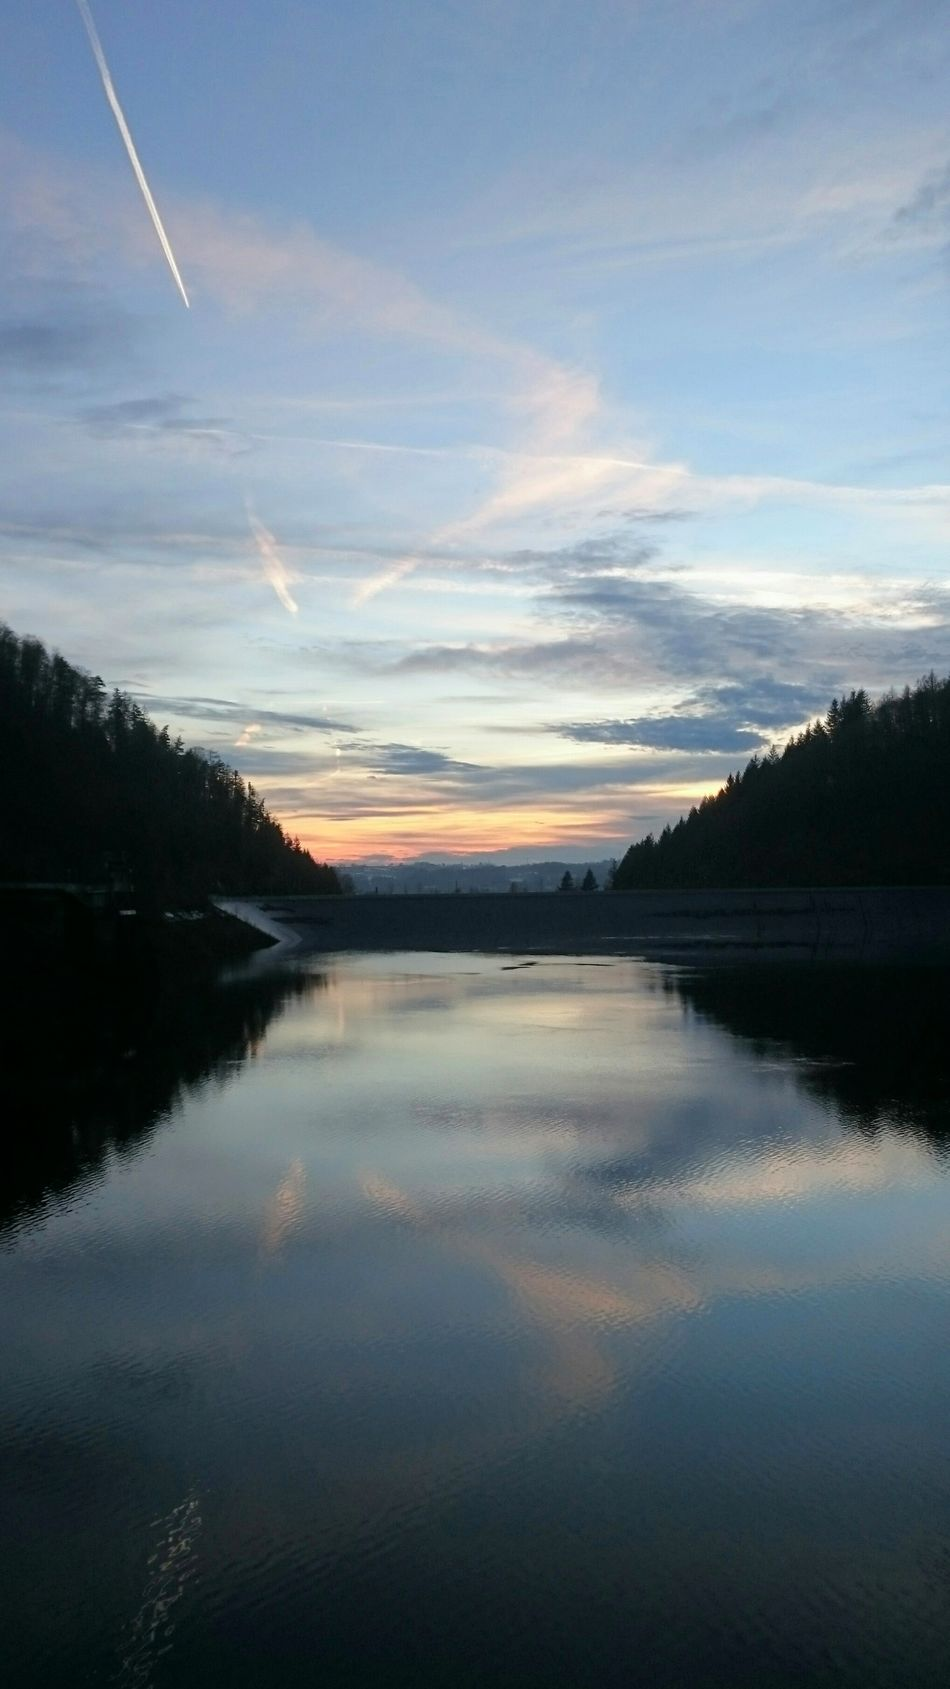 Stausee Wehr Black Forest Germany Schwarzwald Black Forest Sunset Sunlight Beauty In Nature Reflection Landscape Water Nature Outdoors Lake Scenics Sky No People Stausee